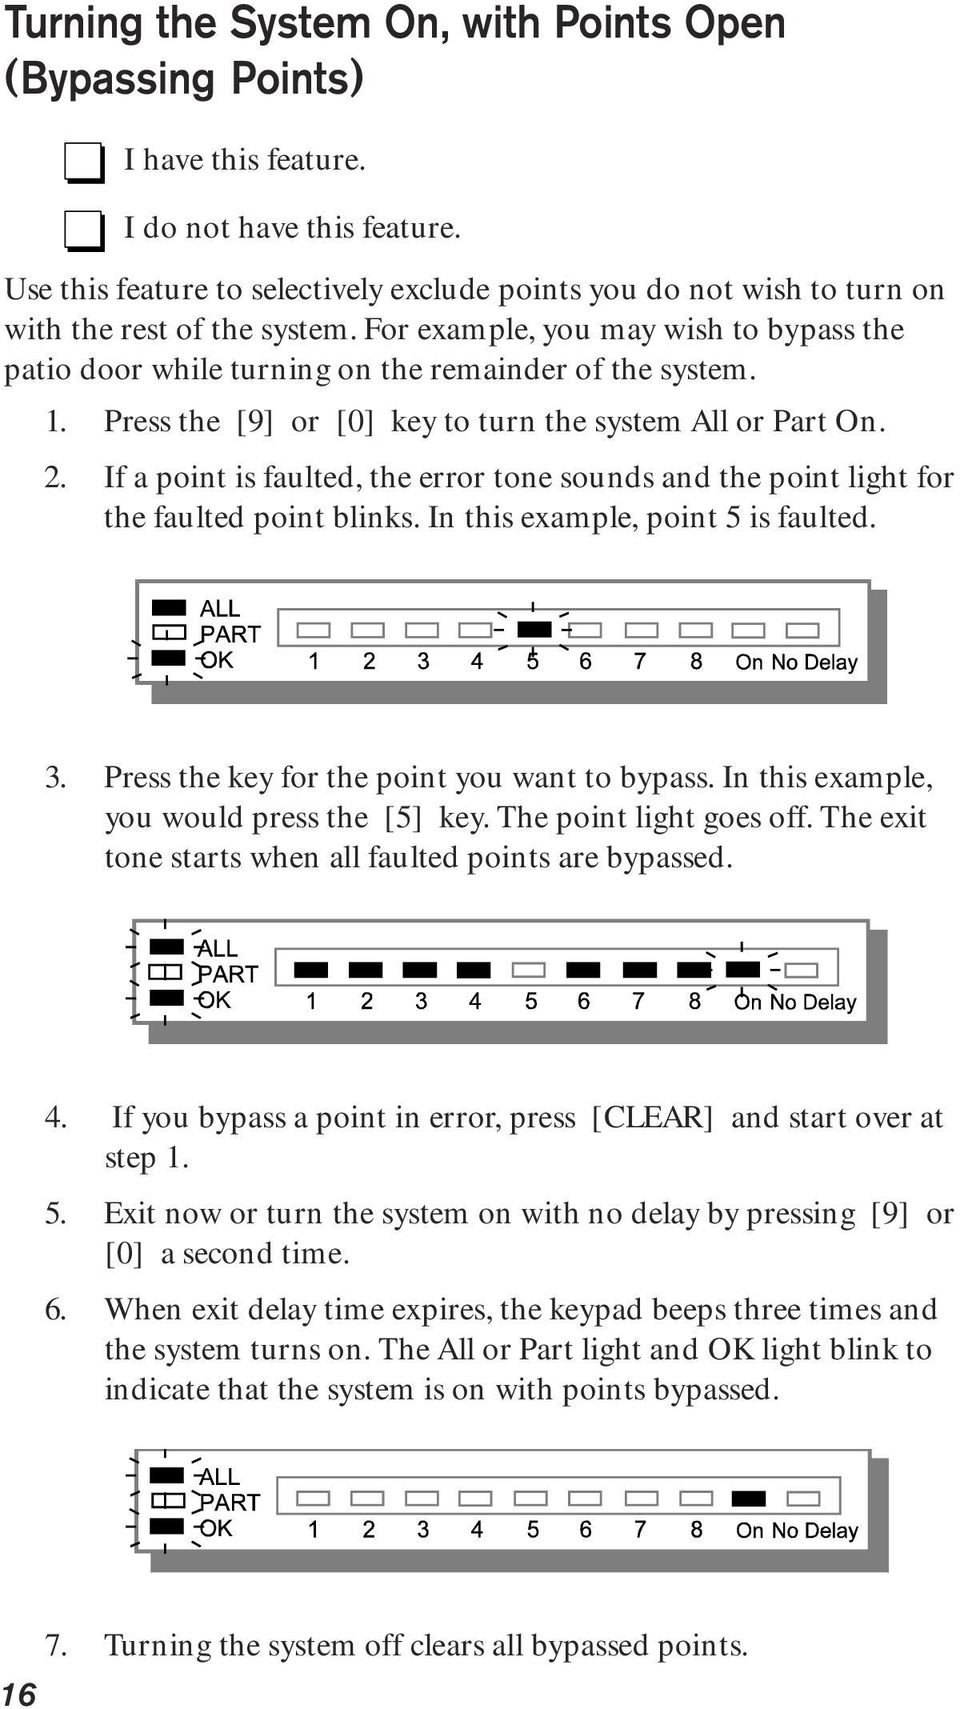 1. Press the [9] or [0] key to turn the system All or Part On. 2. If a point is faulted, the error tone sounds and the point light for the faulted point blinks. In this example, point 5 is faulted. 3.